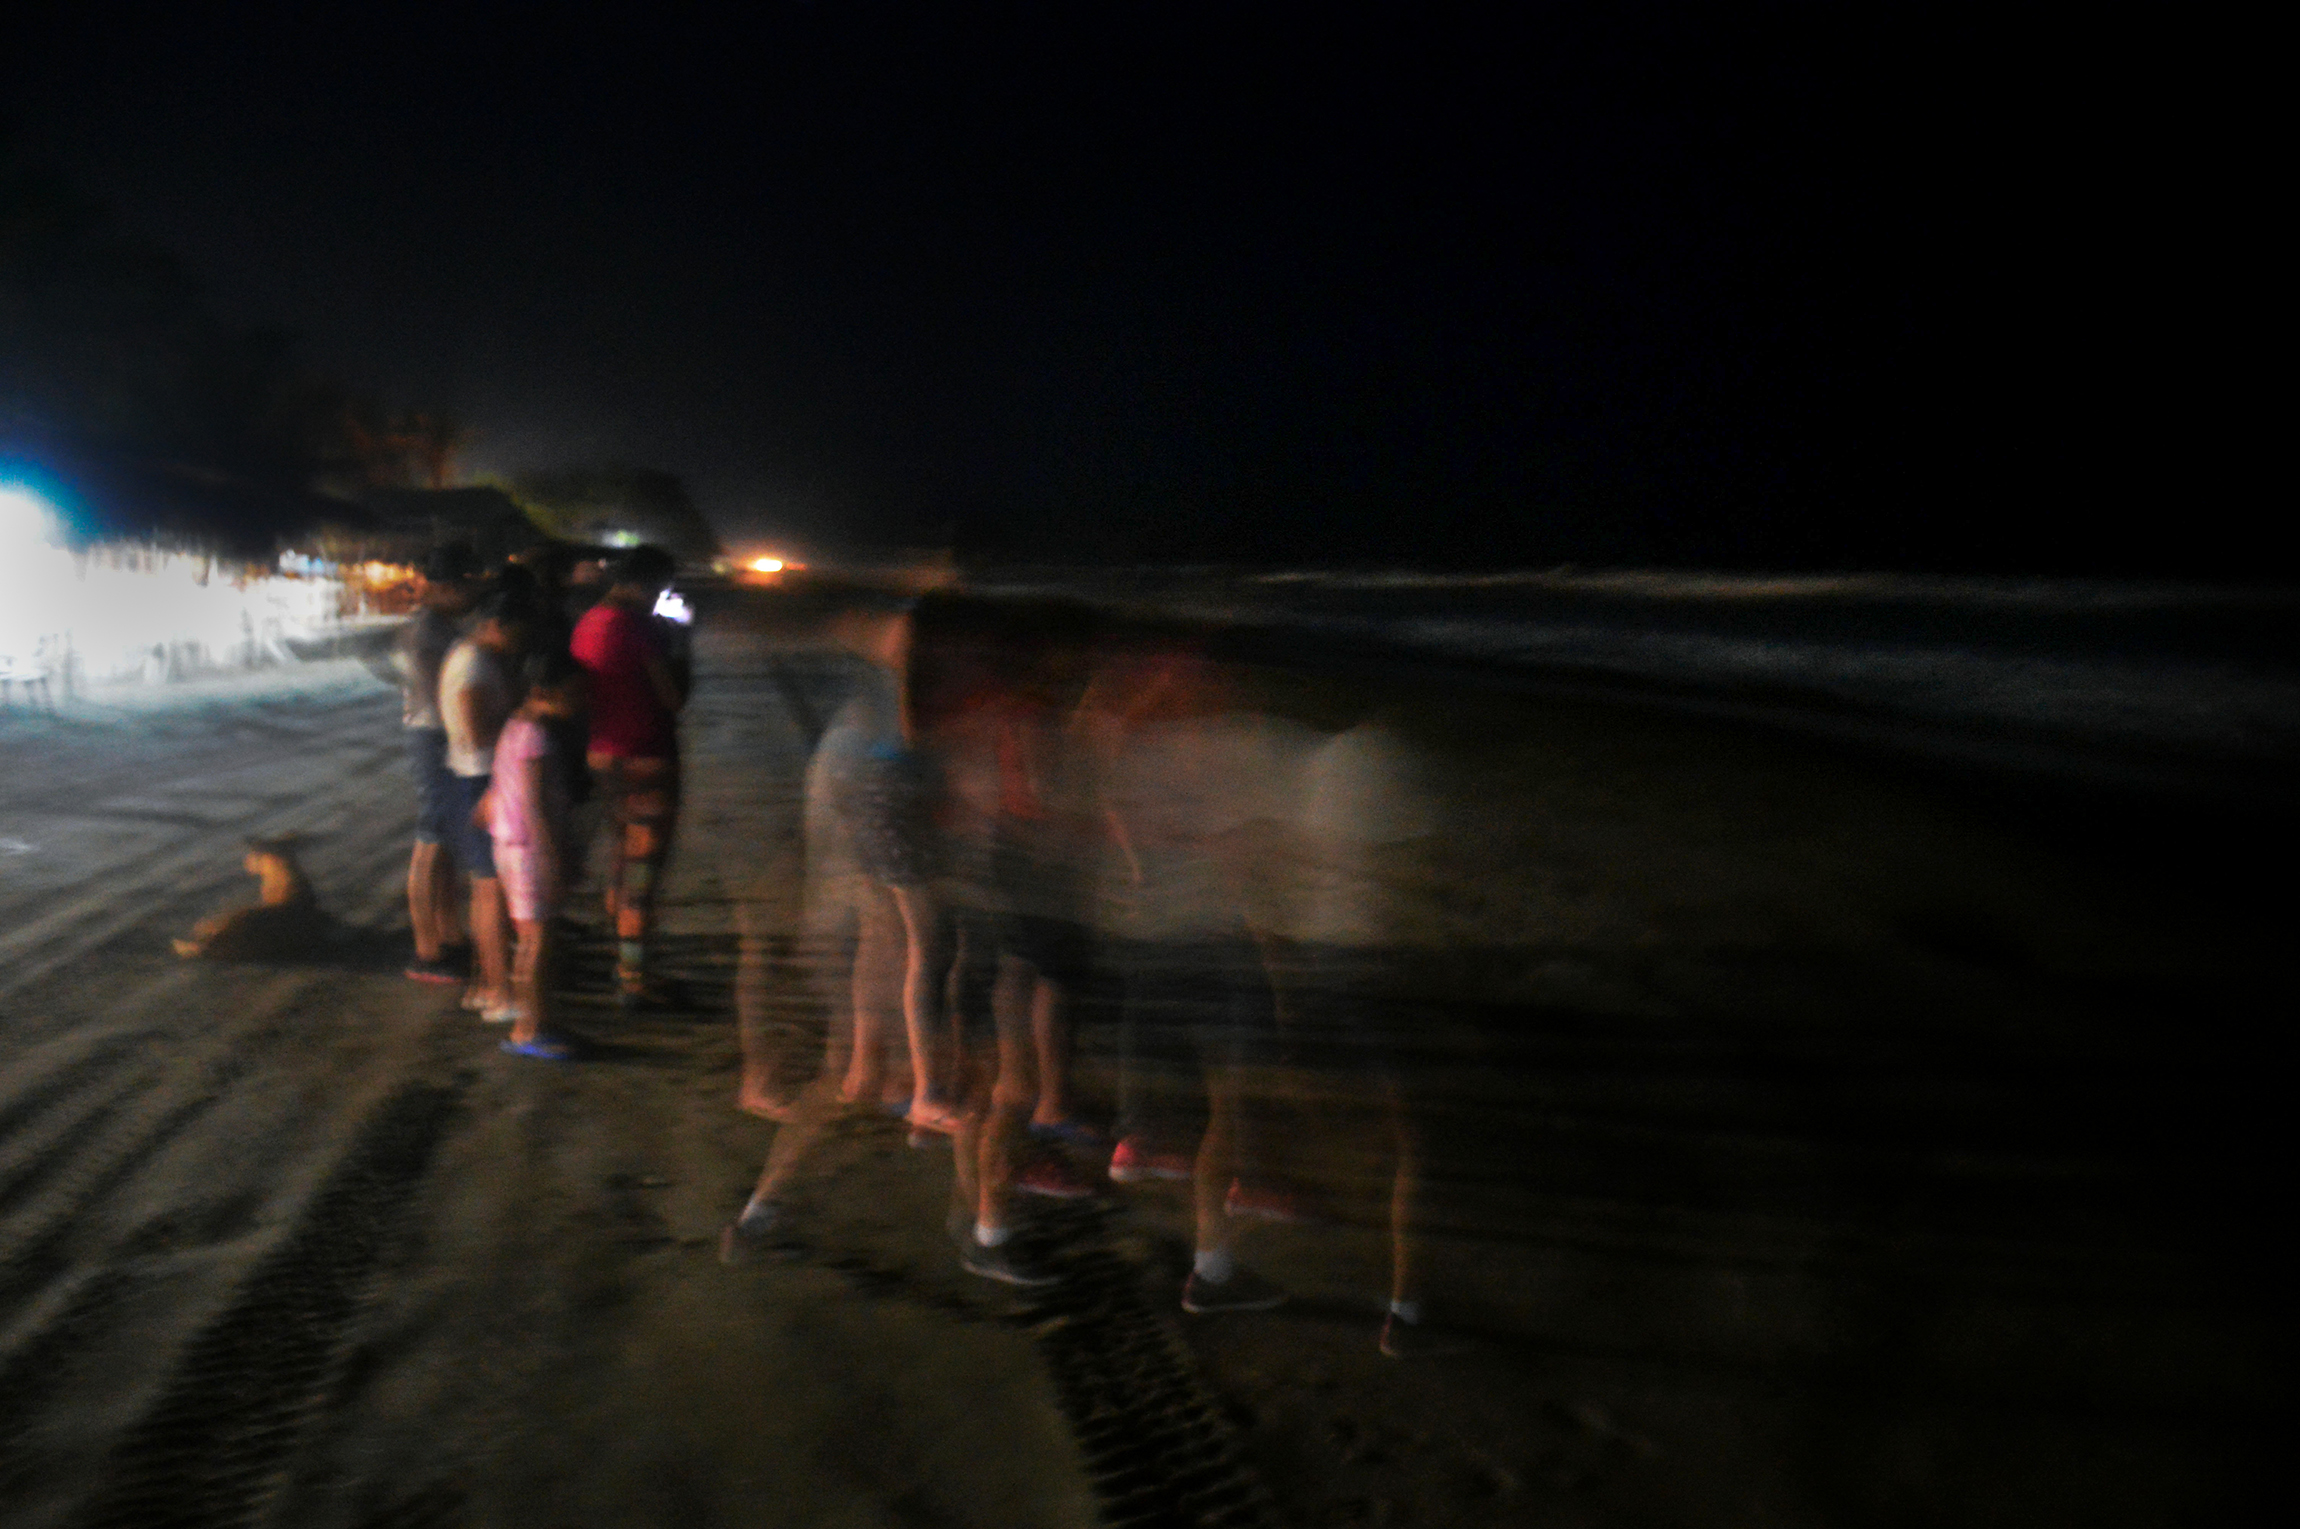 The group dances on Puerto Arista, a beach located on the southw